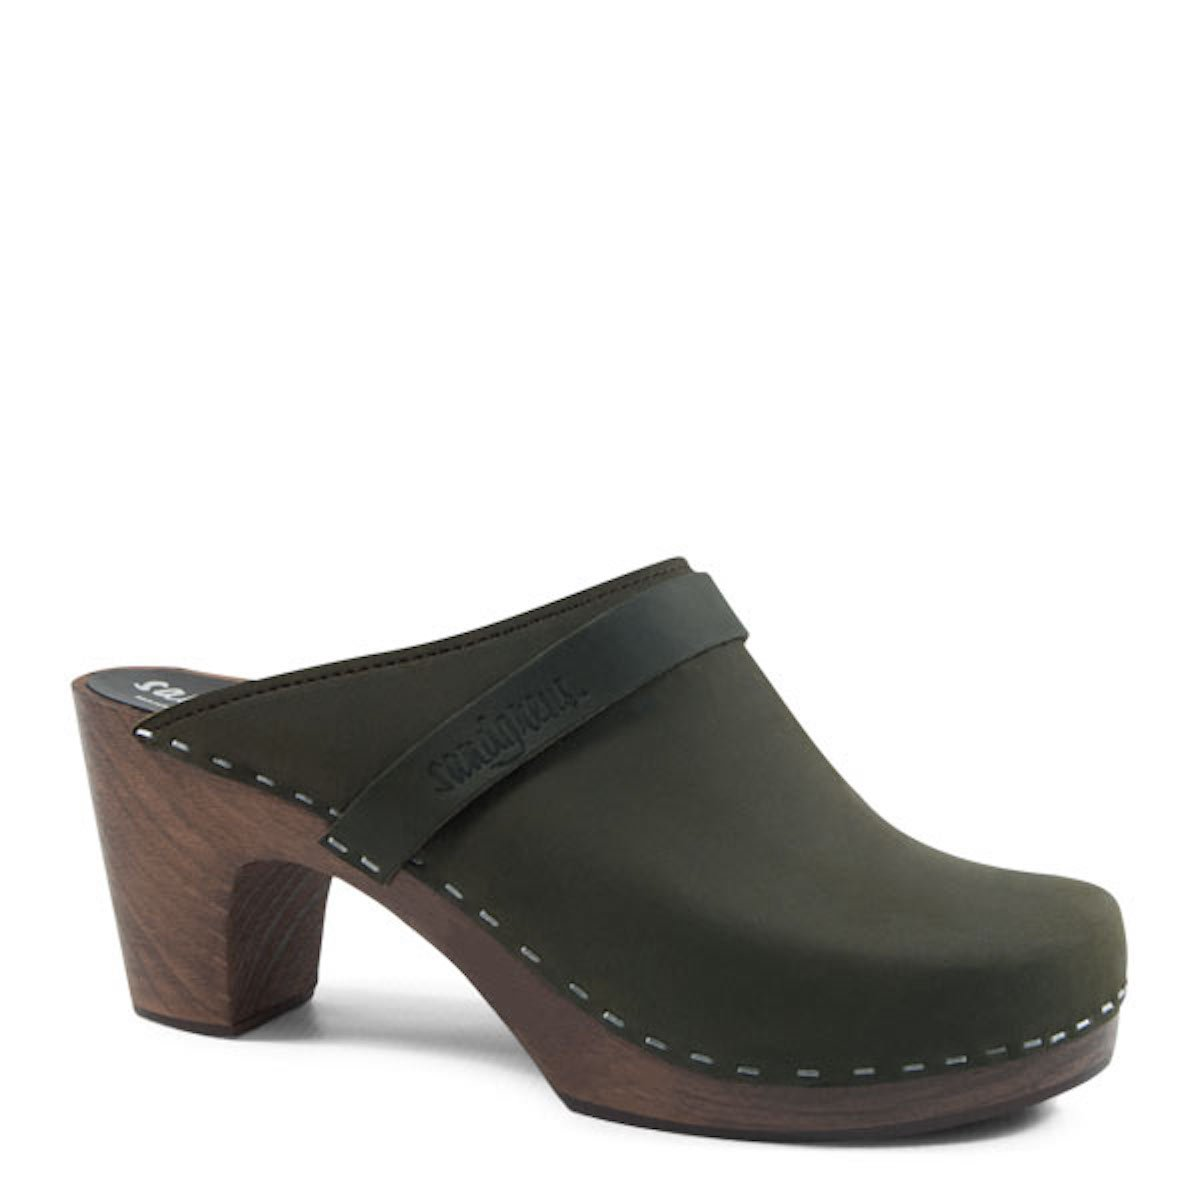 Olive Sandgrens Maya High Rise Heel Swedish Wooden Clogs for Women